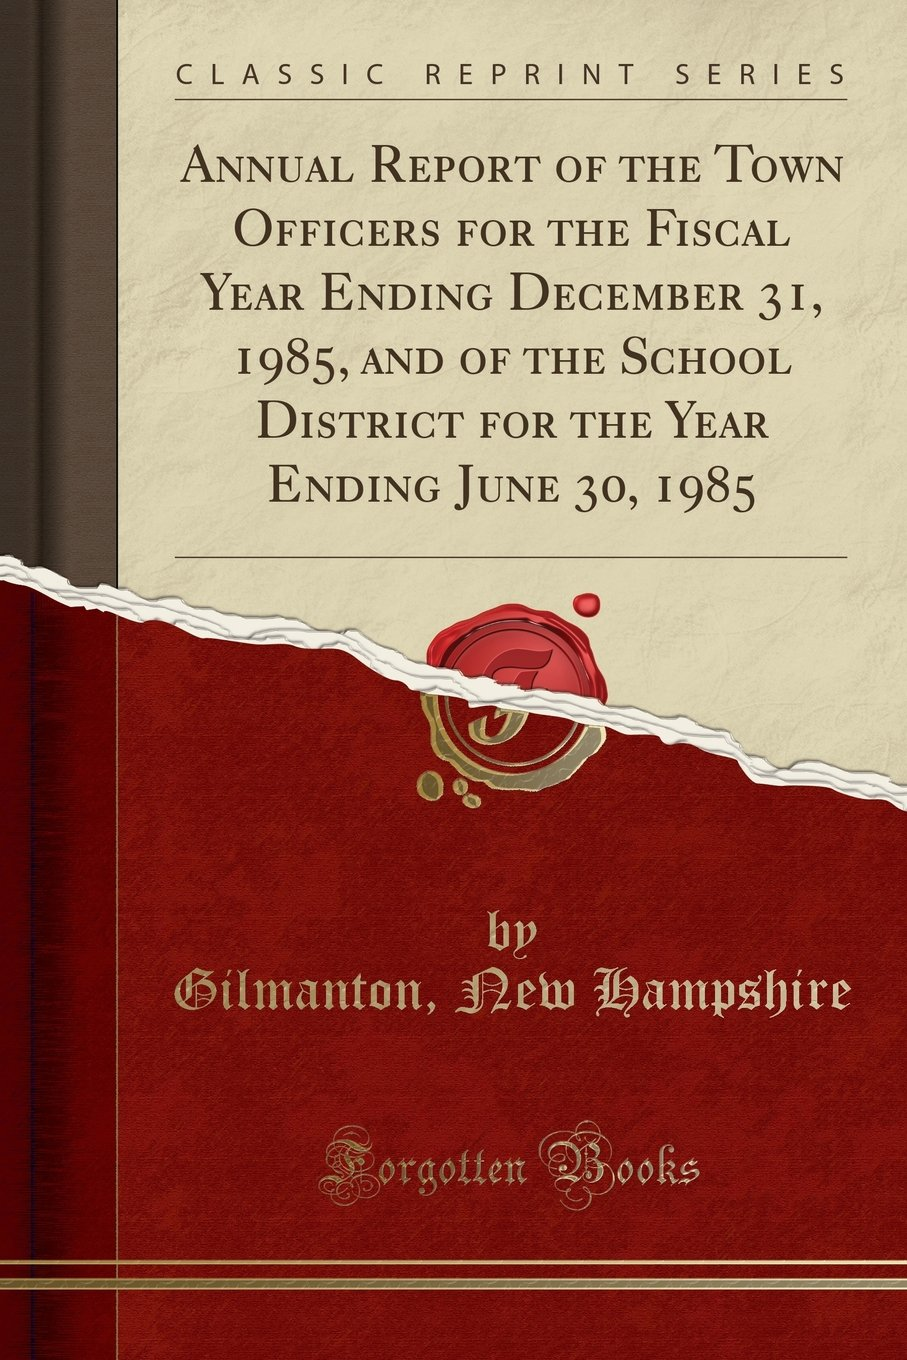 Annual Report of the Town Officers for the Fiscal Year Ending December 31, 1985, and of the School District for the Year Ending June 30, 1985 (Classic Reprint) ebook